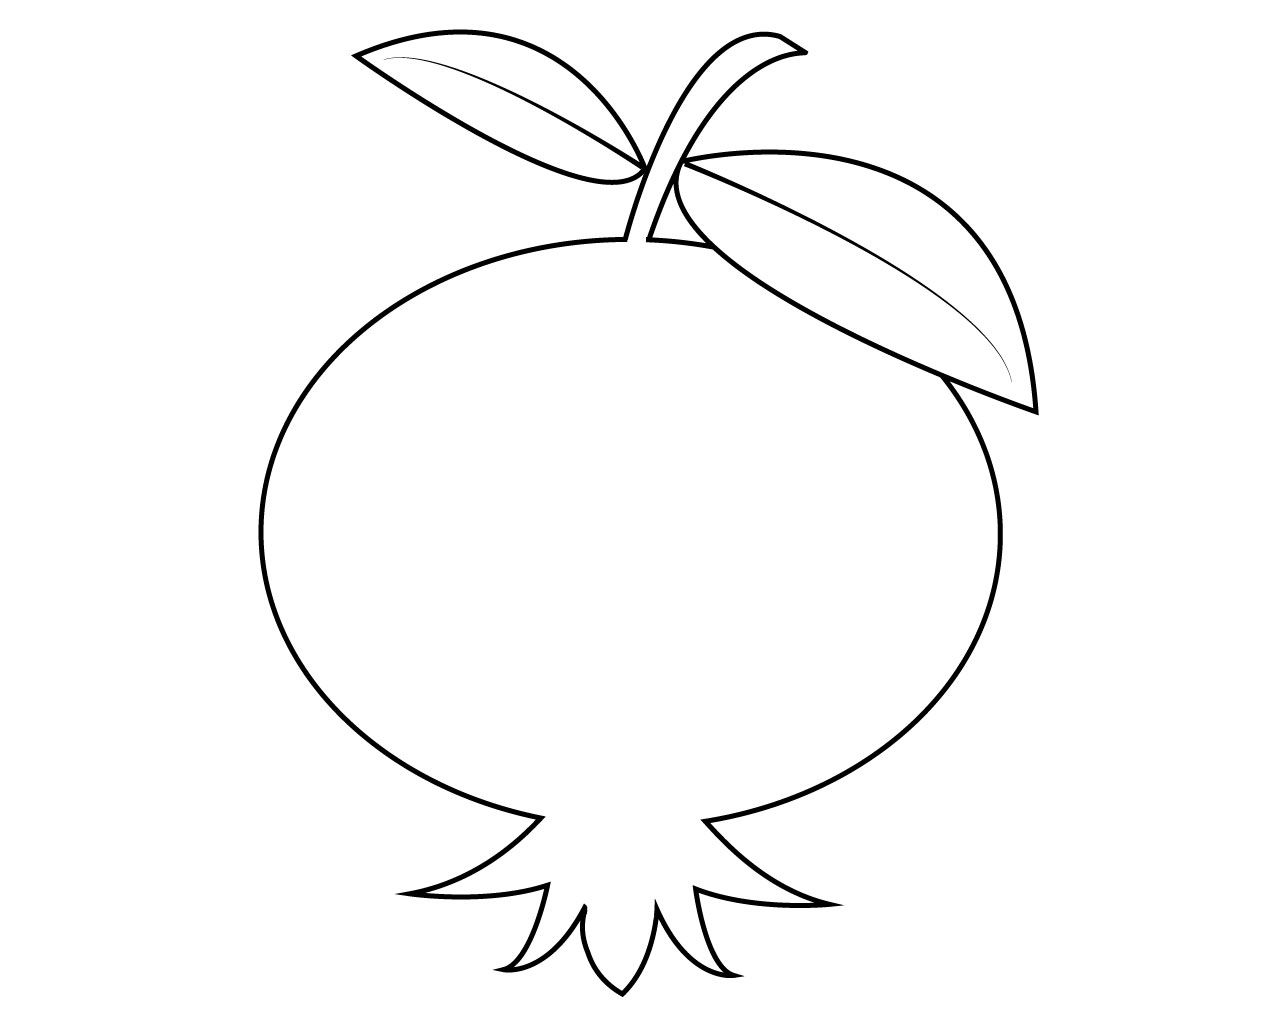 Fruits coloring pages careersplay. Pomegranate clipart printable